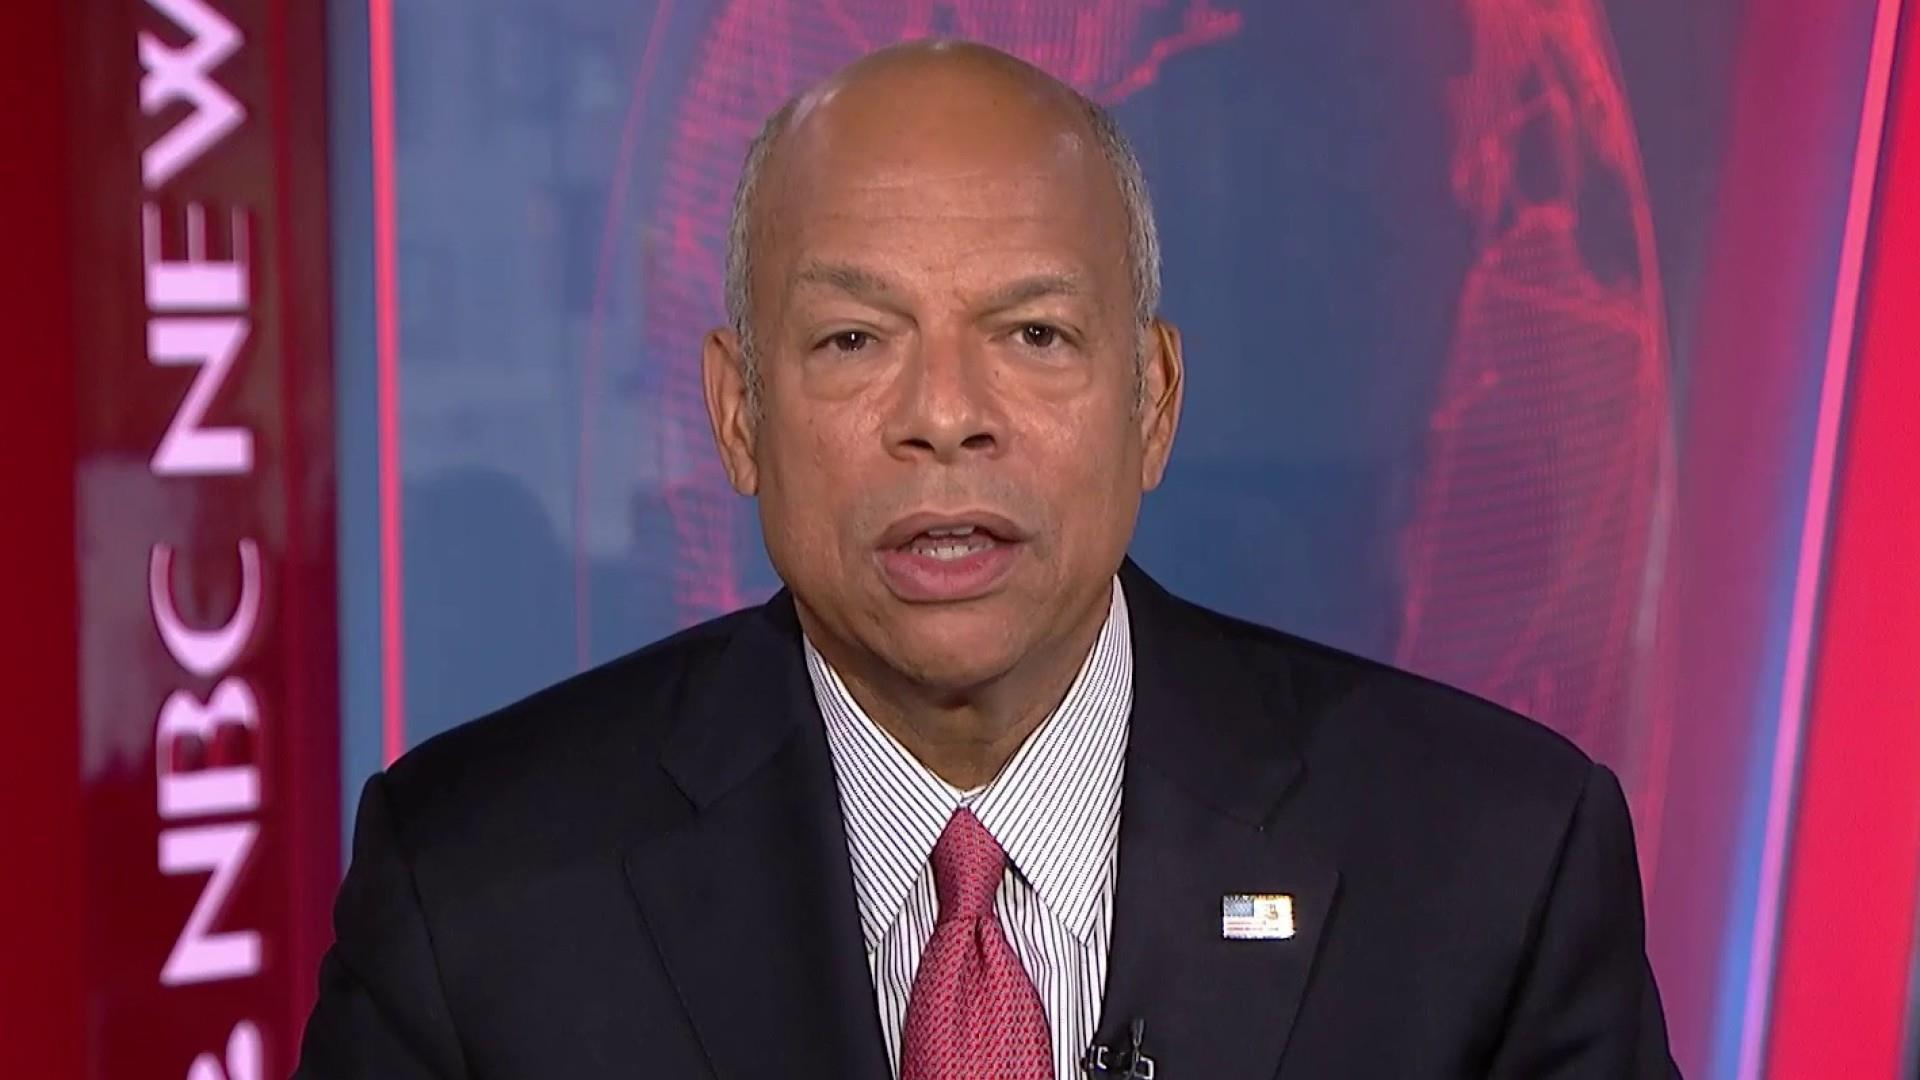 Fmr. Homeland Security Secretary on U.S. safety: We are challenged now when it comes to terrorist-inspired attacks